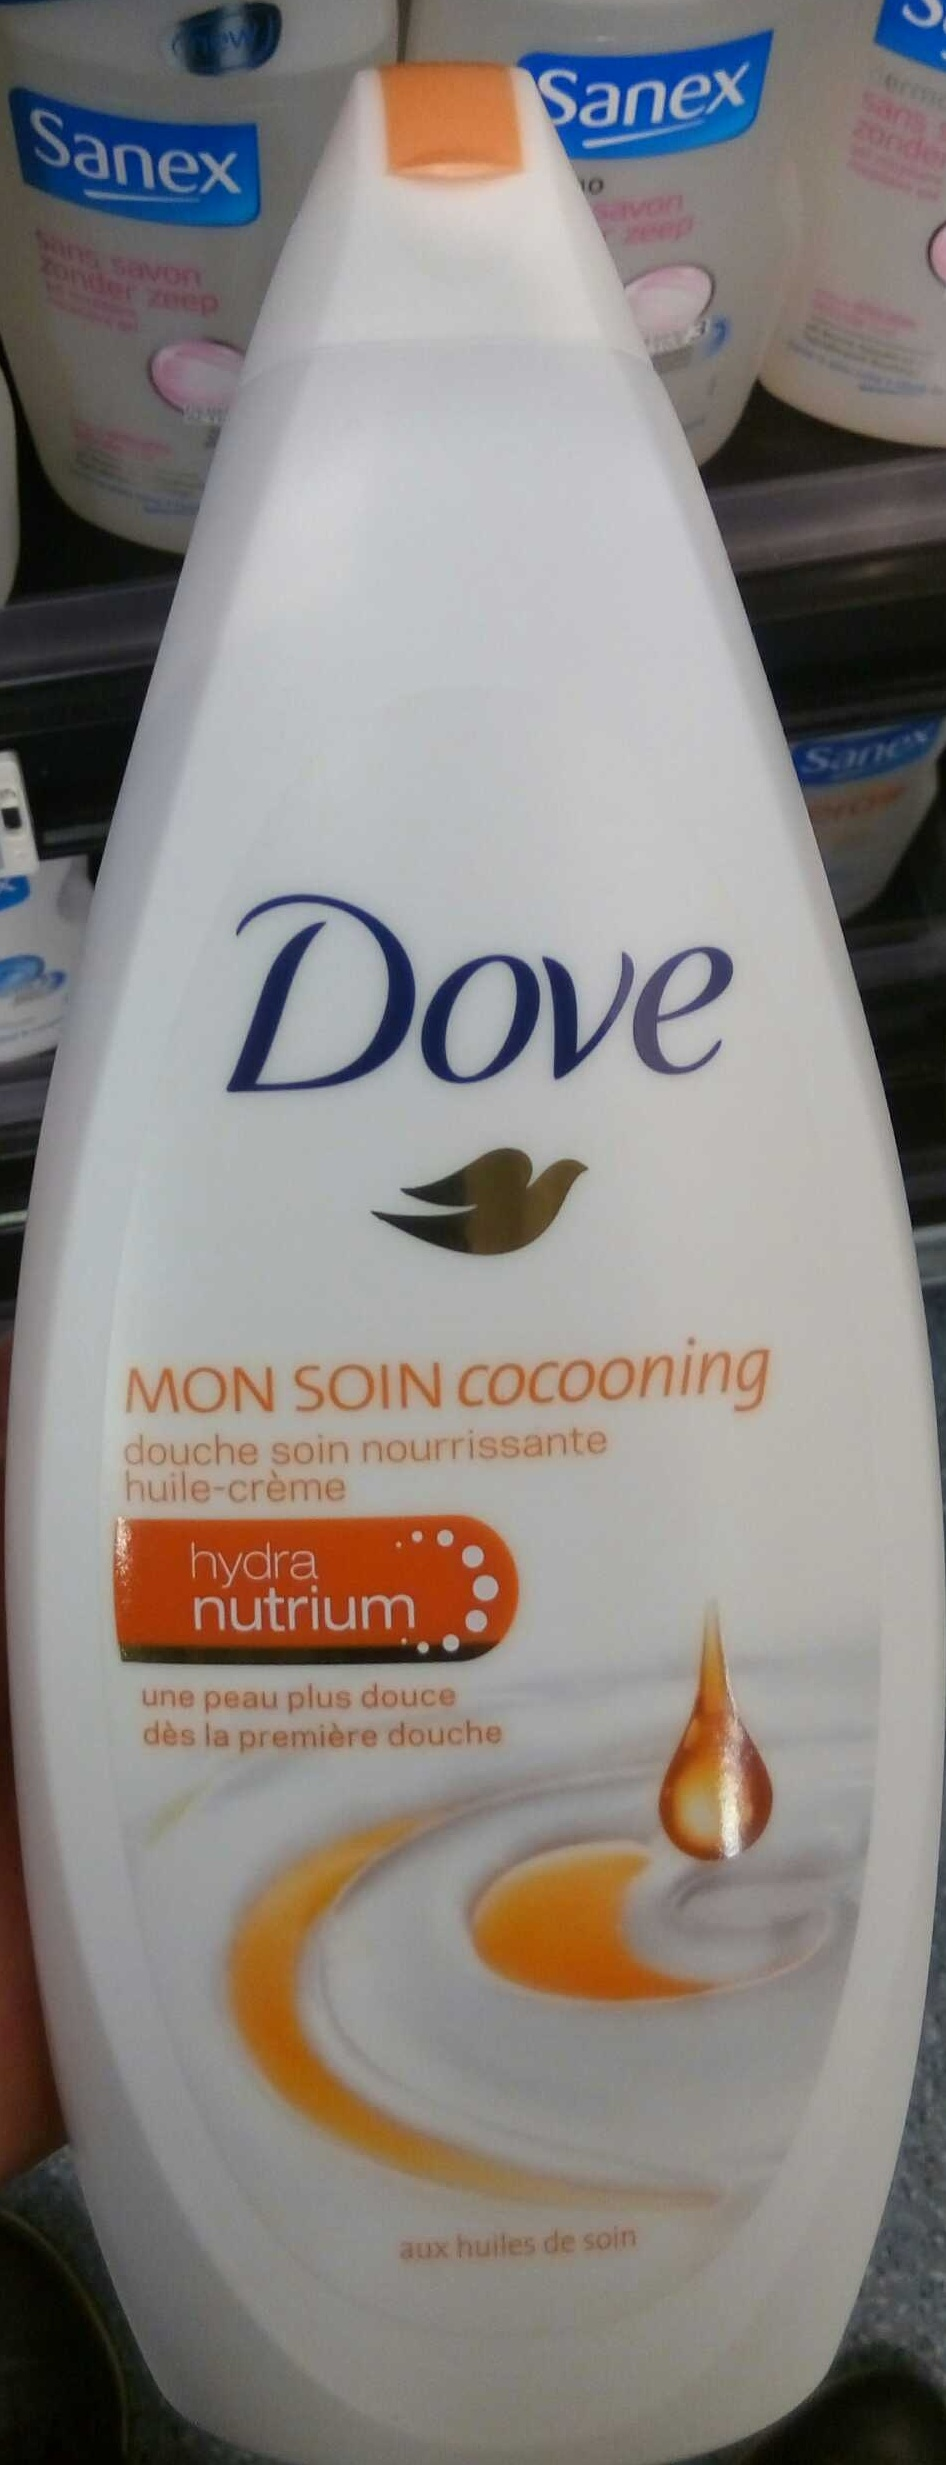 Mon soin cocooning - Product - fr